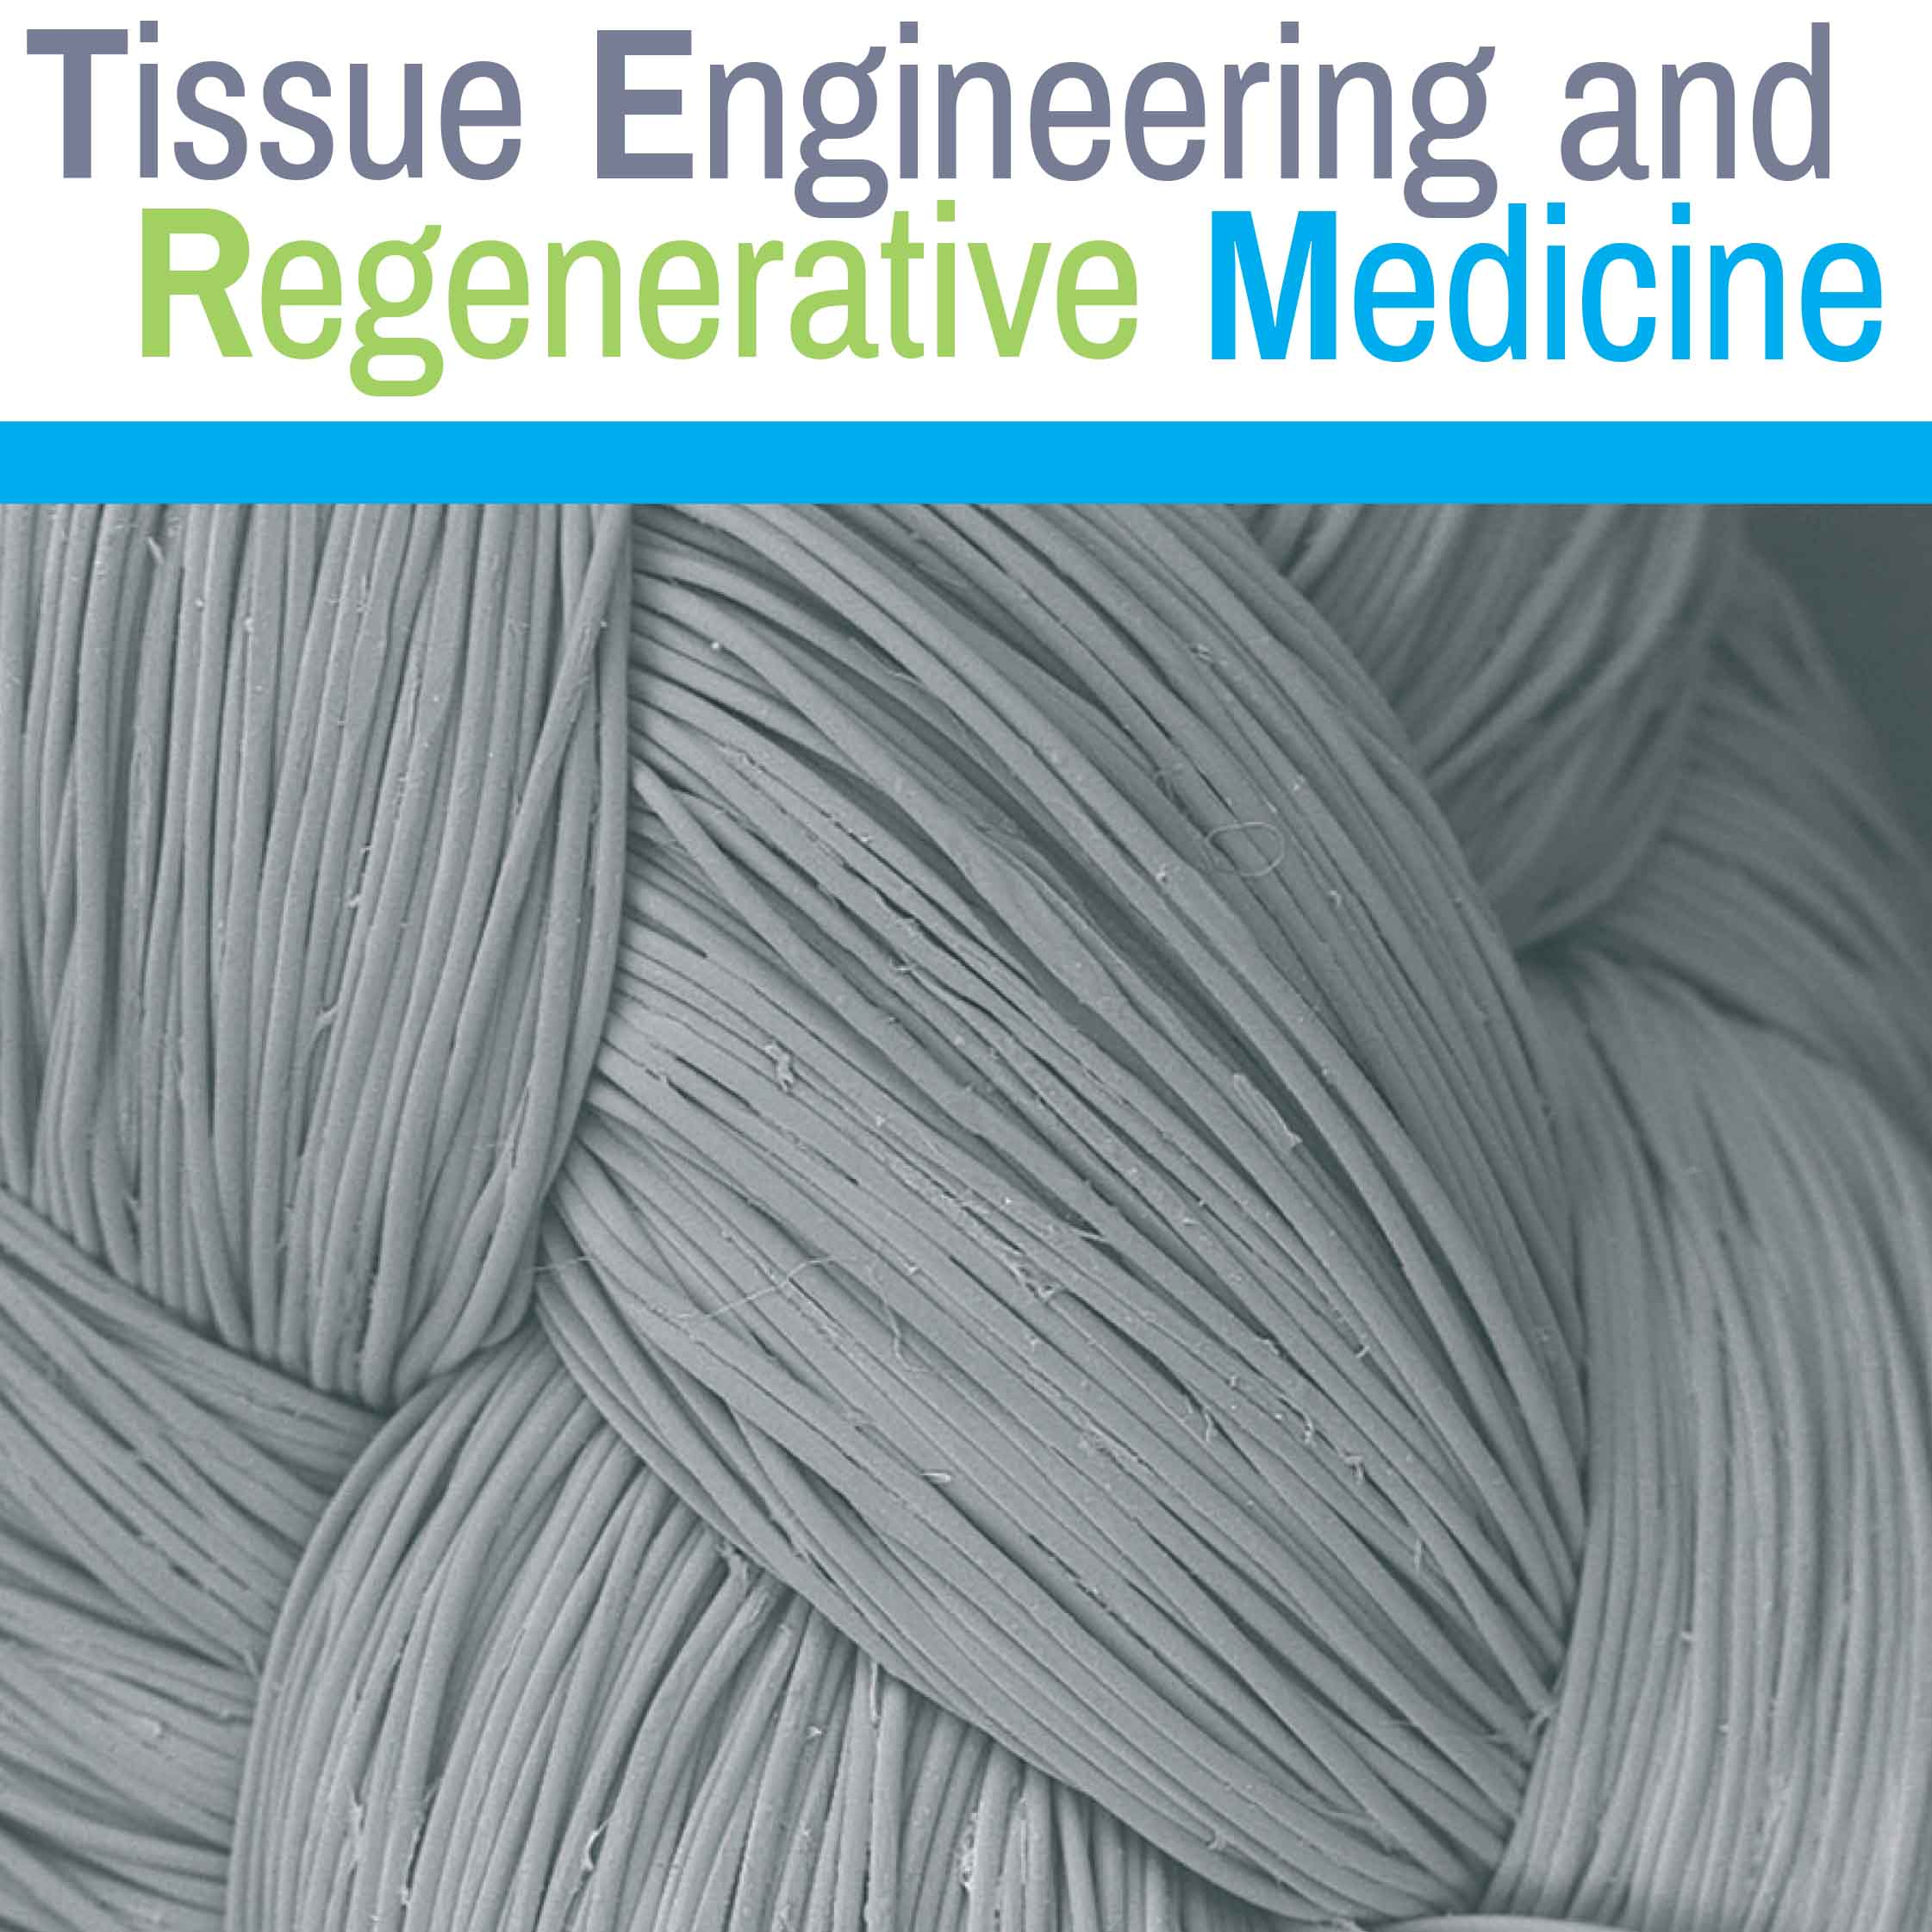 Eunji Chung, Journal of Tissue Engineering and Regenerative Medicine, 2017 Cover